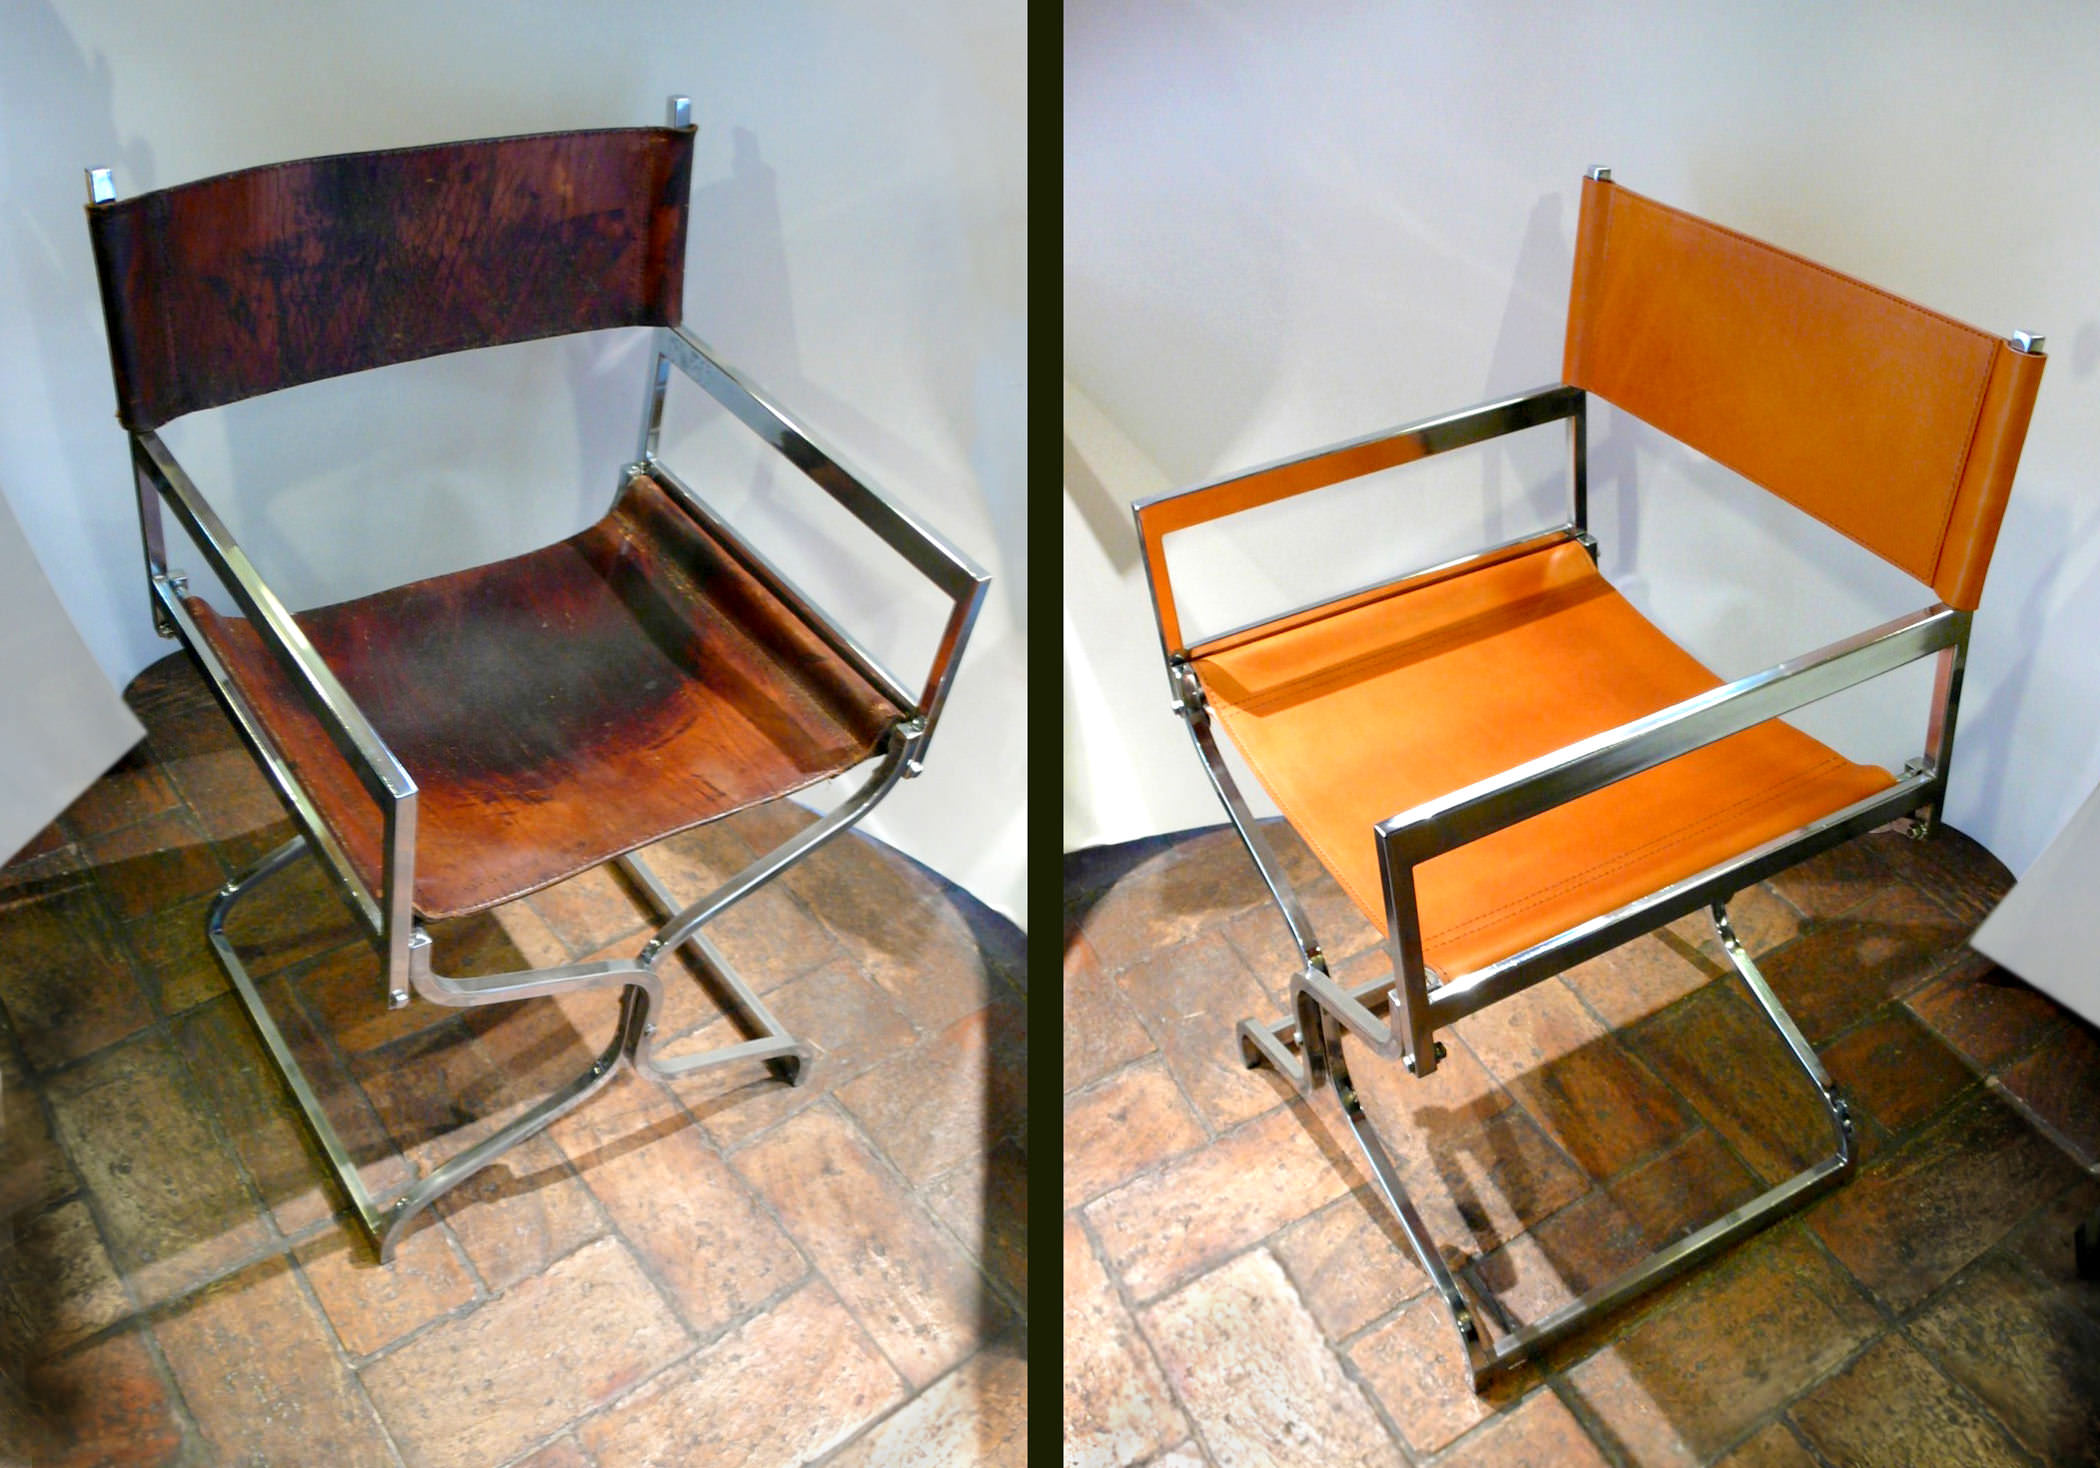 Restoring a director s chair before and after Dario Alfonsi